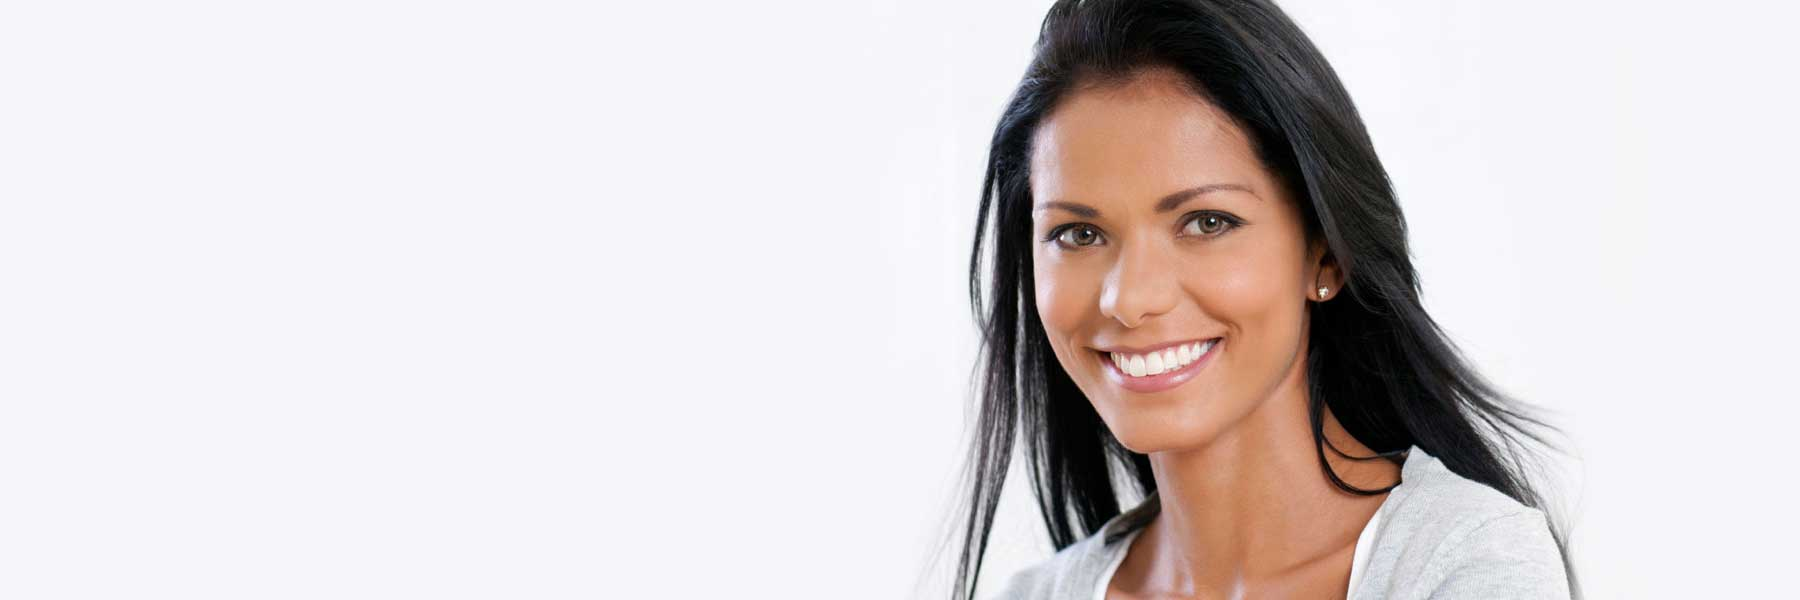 cosmetic dentistry | middletown nj